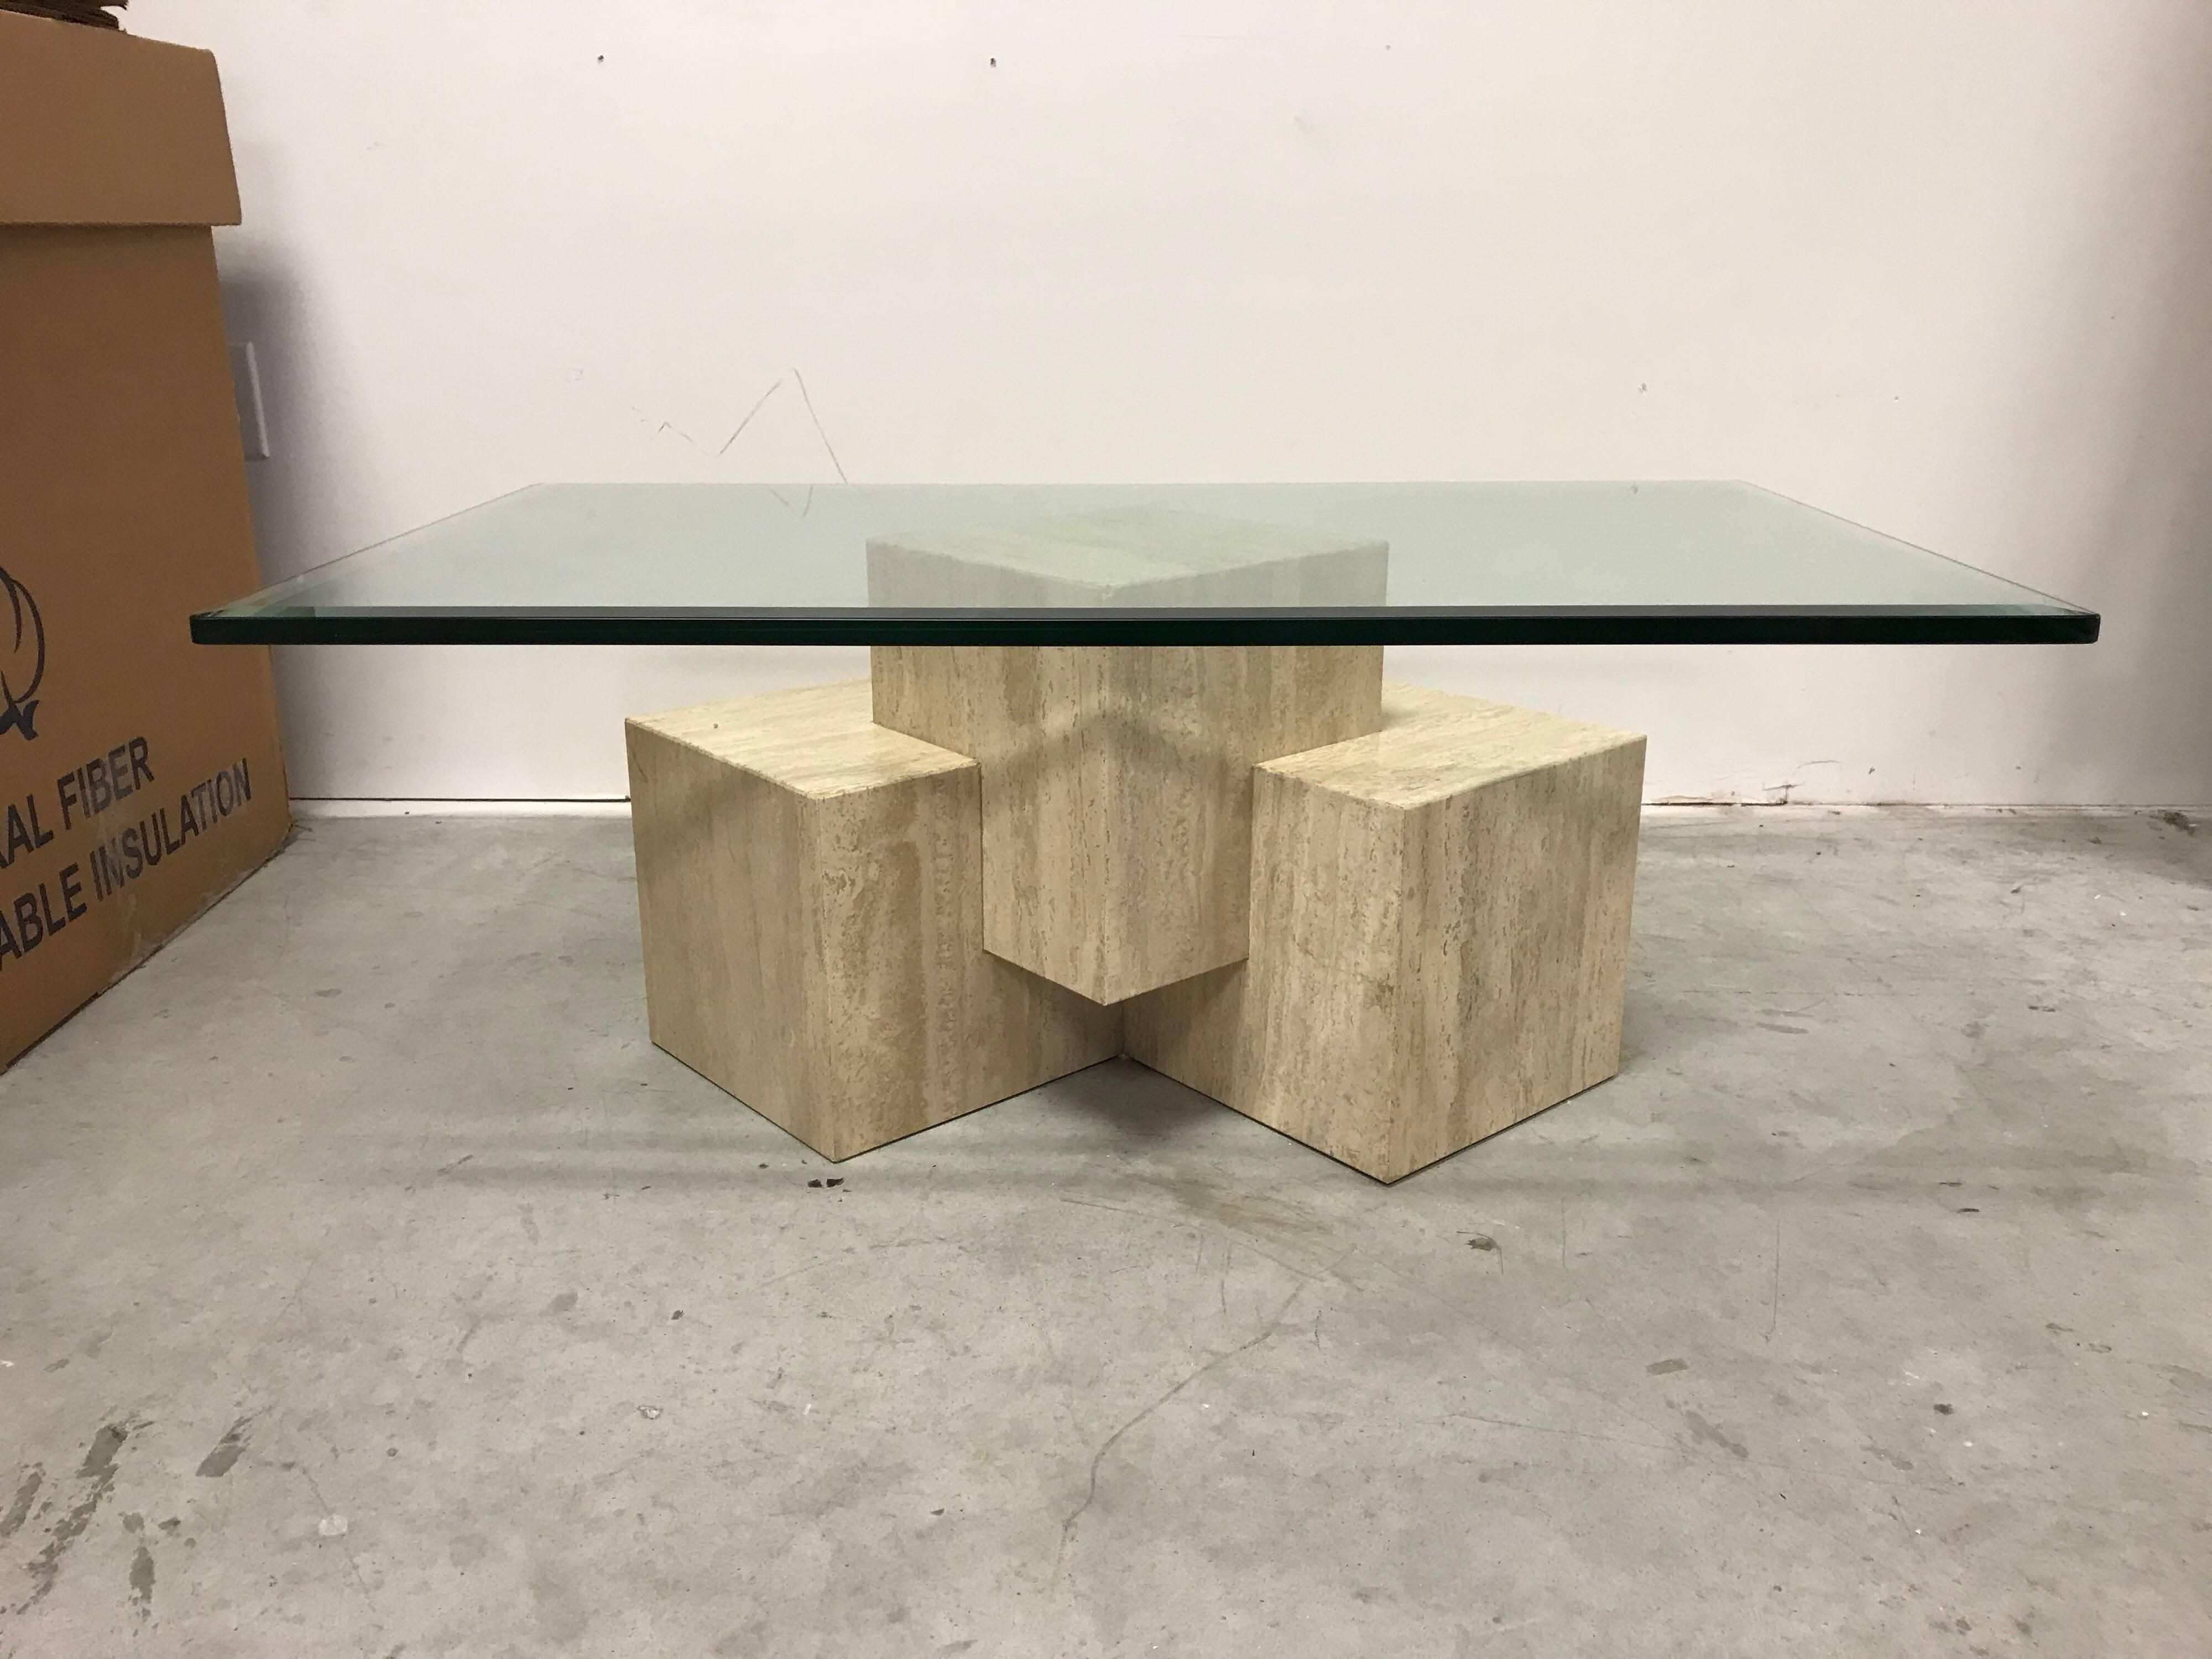 1970s Guy Barker For Ello Travertine Cube Coffee Table With Glass